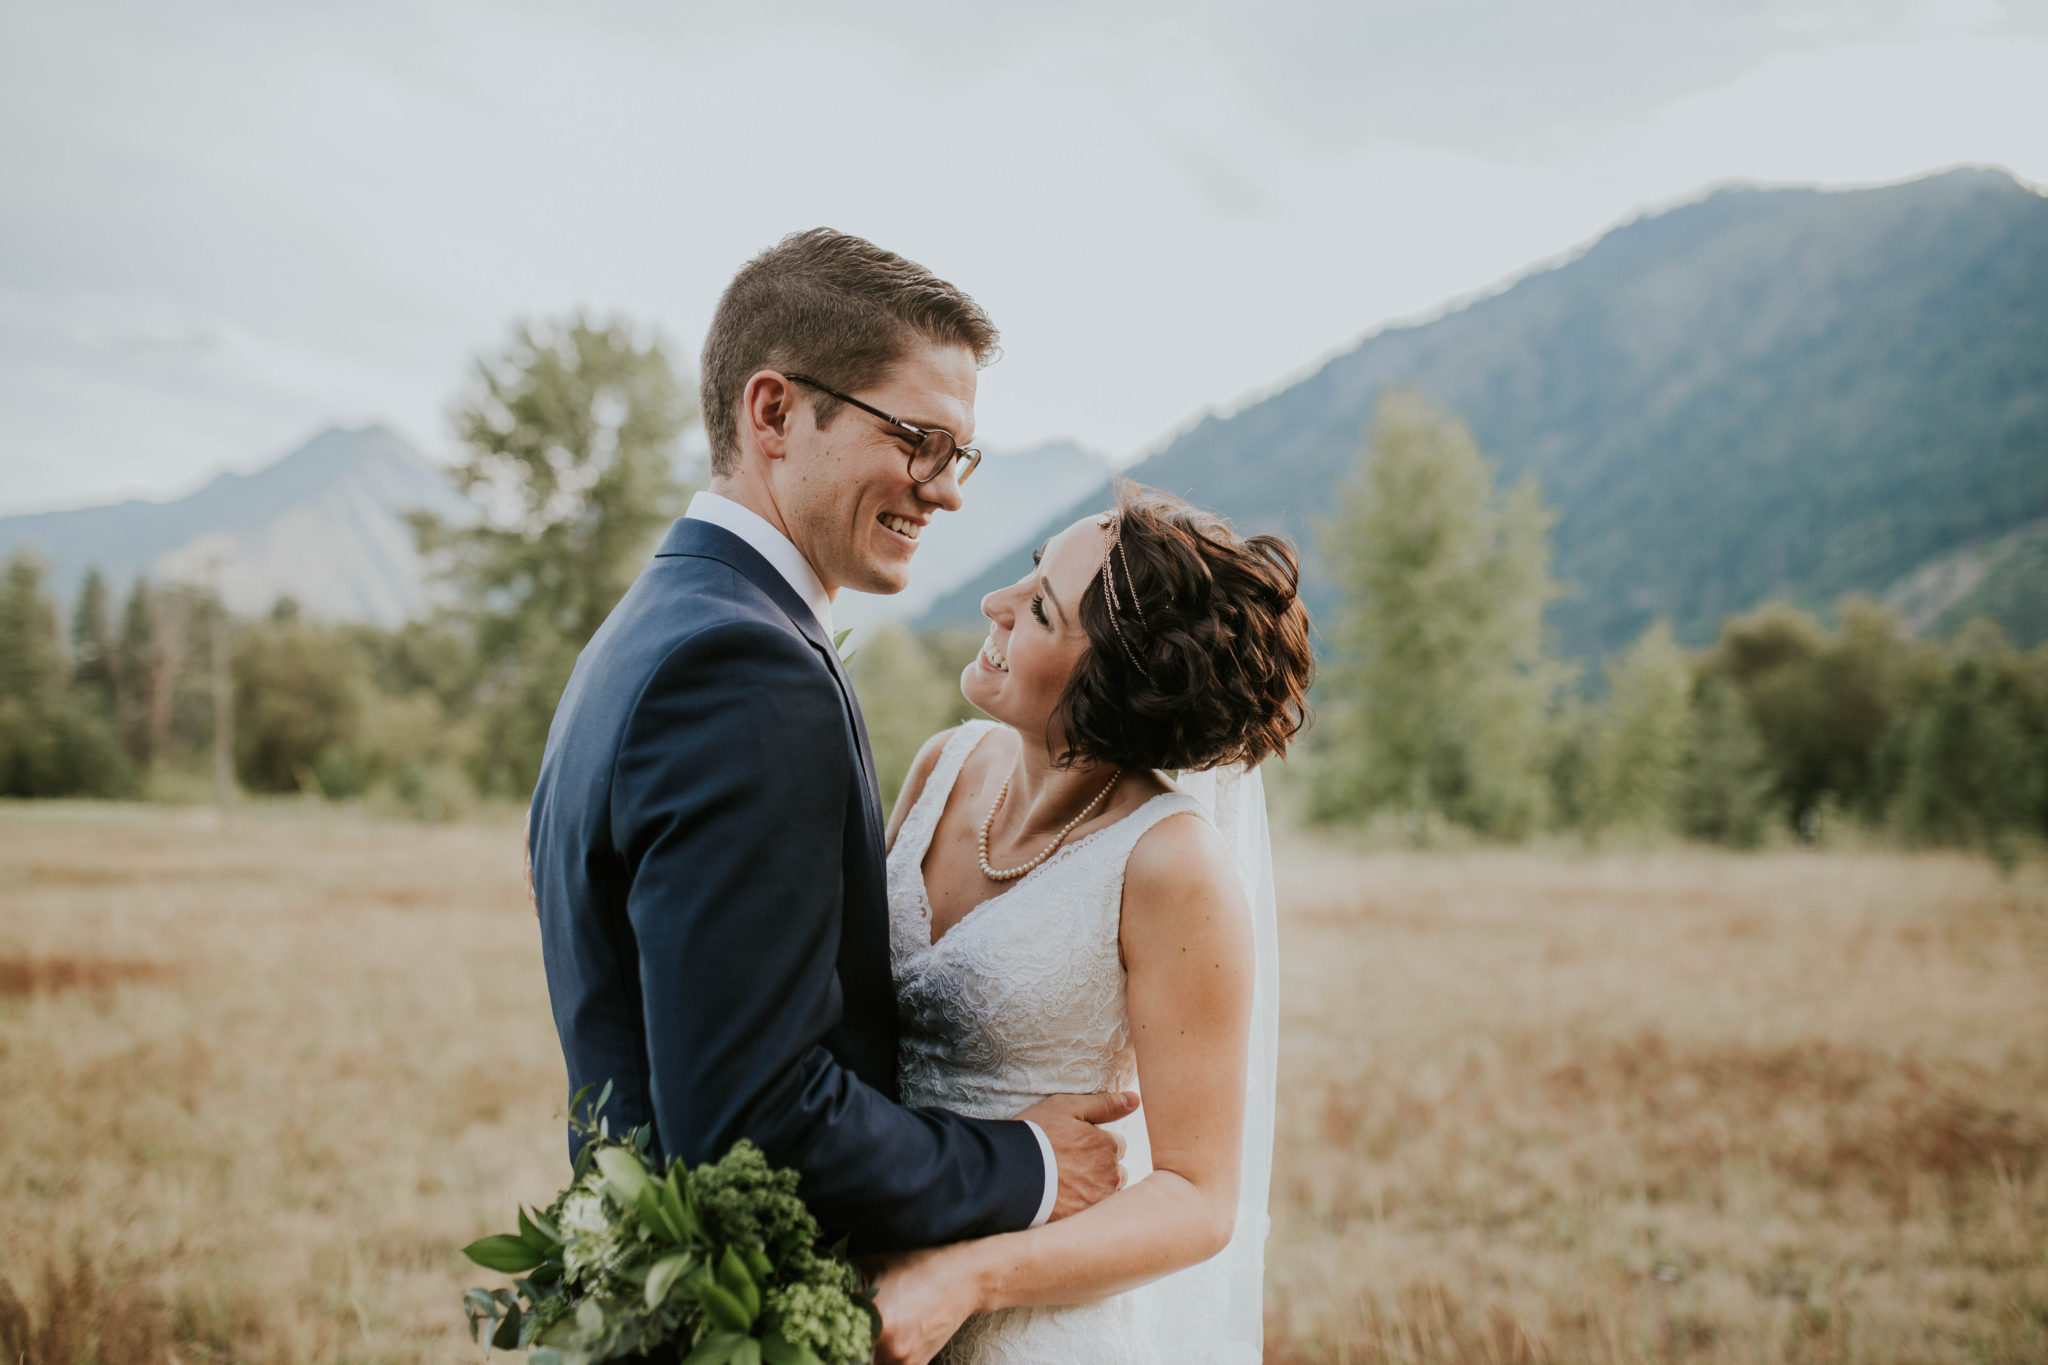 rachel-and-patrick-seattle-washington-wedding-photographer-524